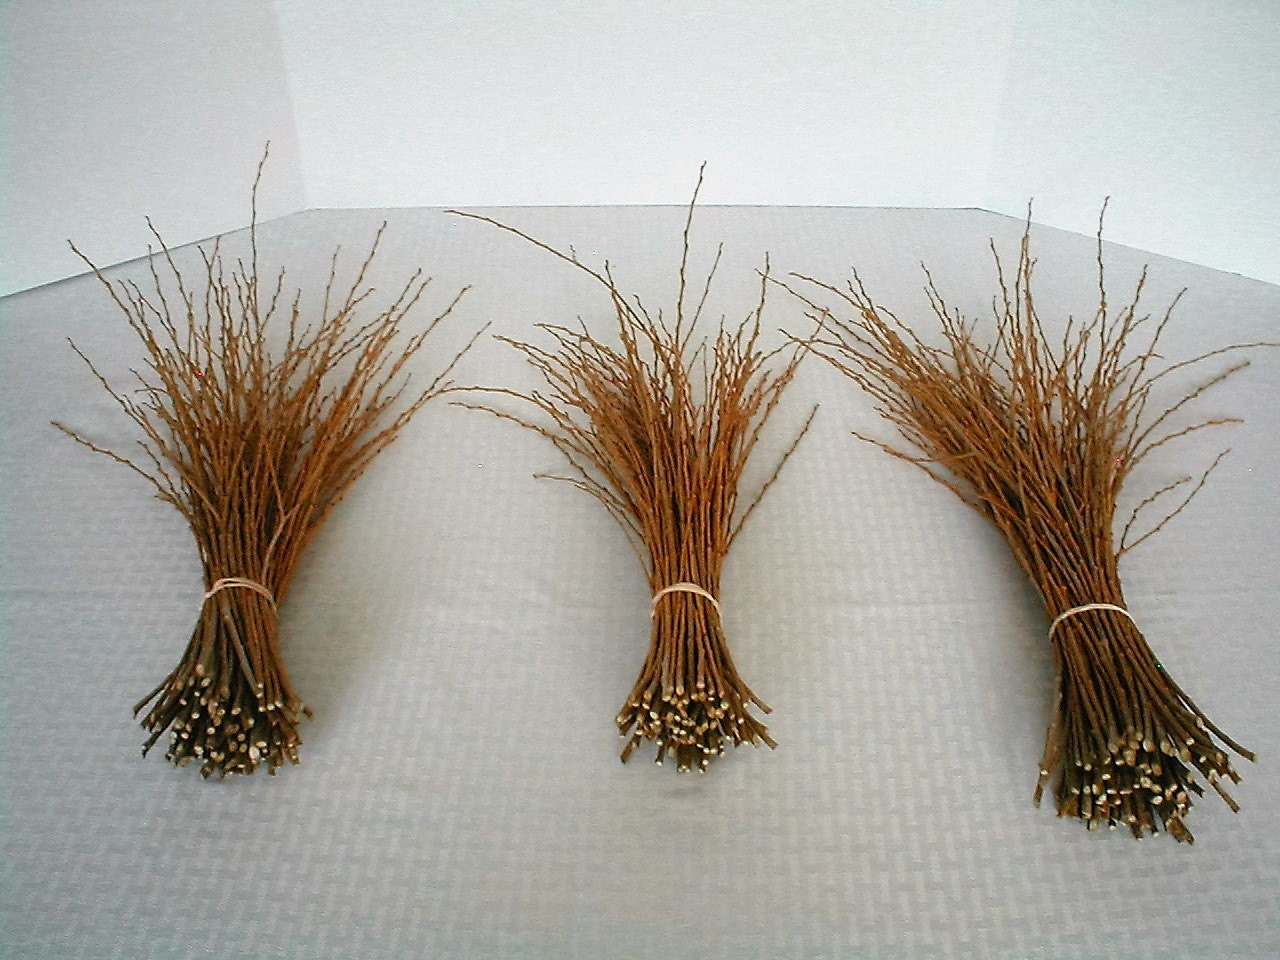 willow branches for crafting wood branch willows rustic 7 00